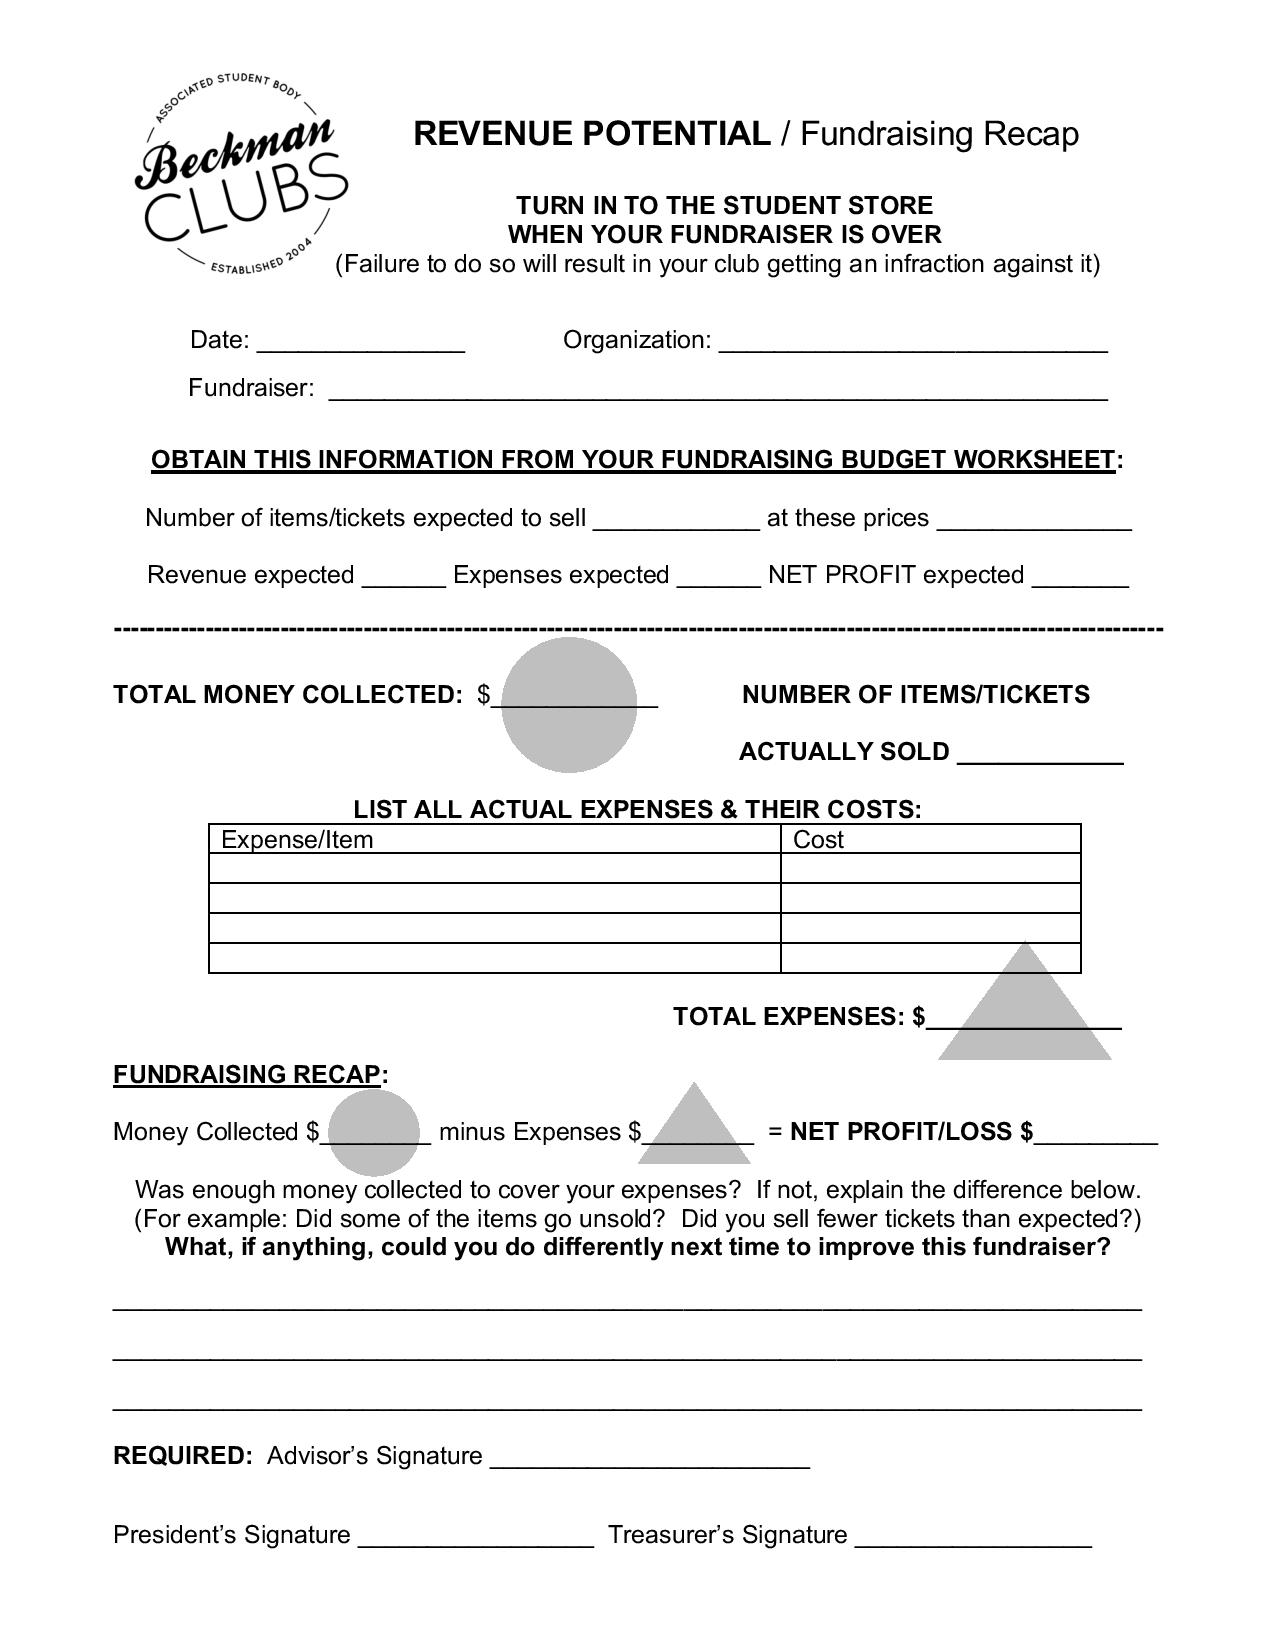 ClubsFundraiserPacket-page-007.jpg